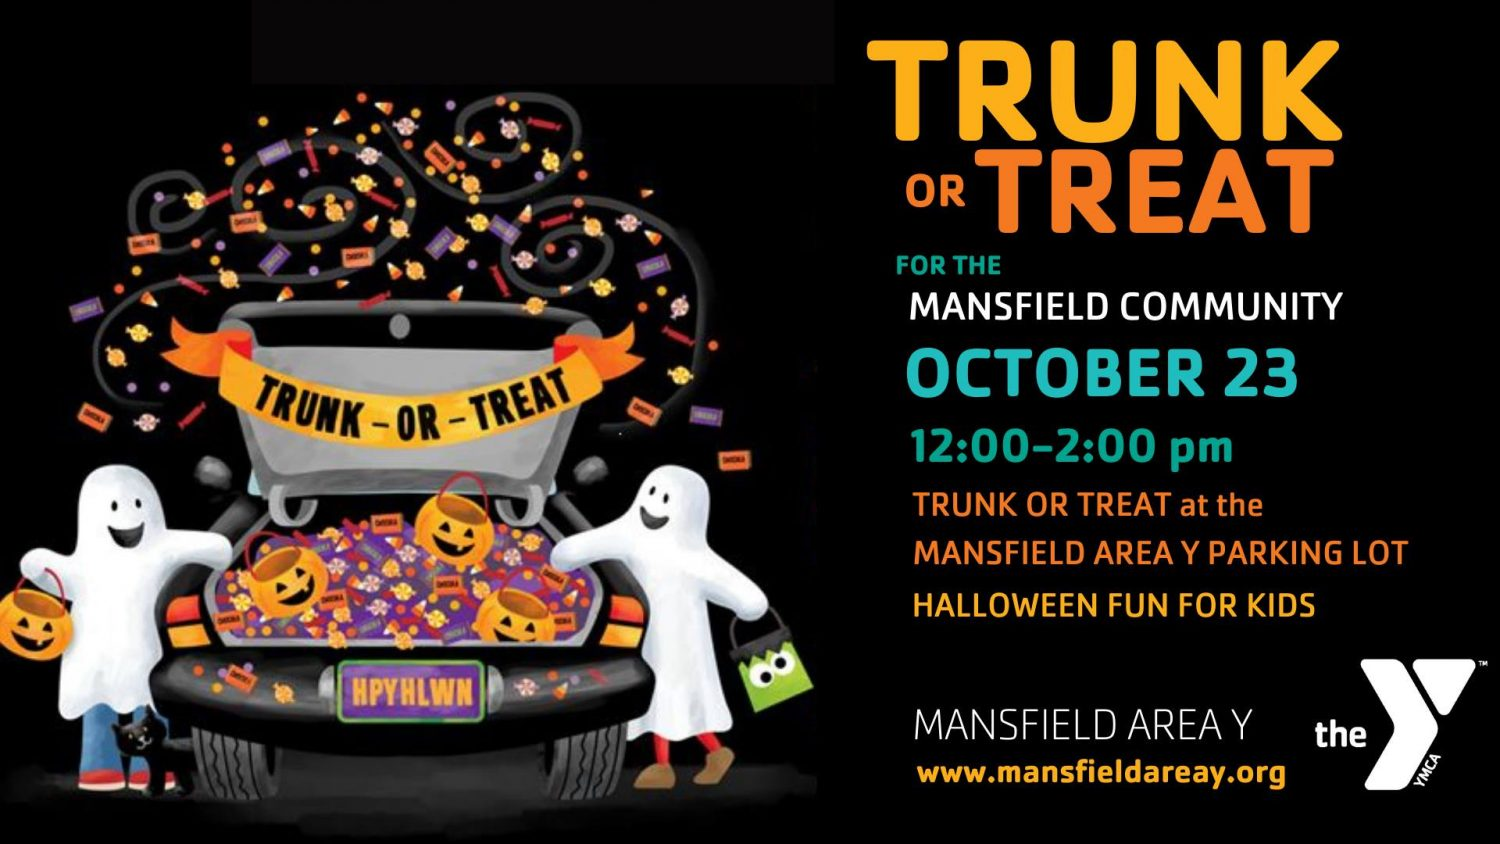 Annual Trunk or Treat at Mansfield Area Y